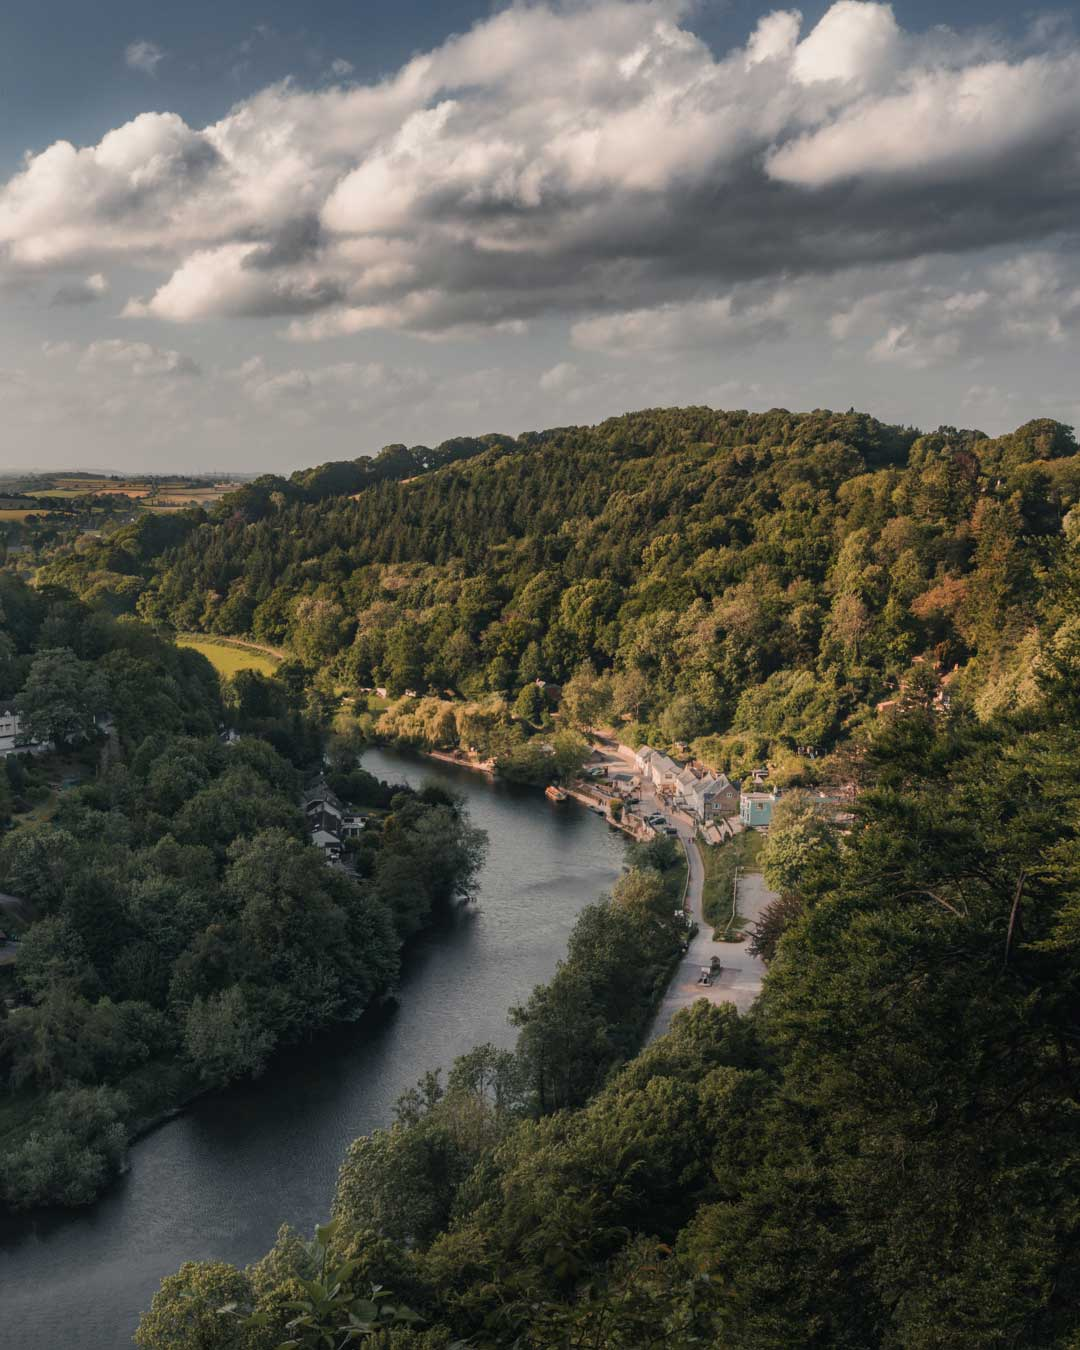 The River Wye in the English county of Herefordshire